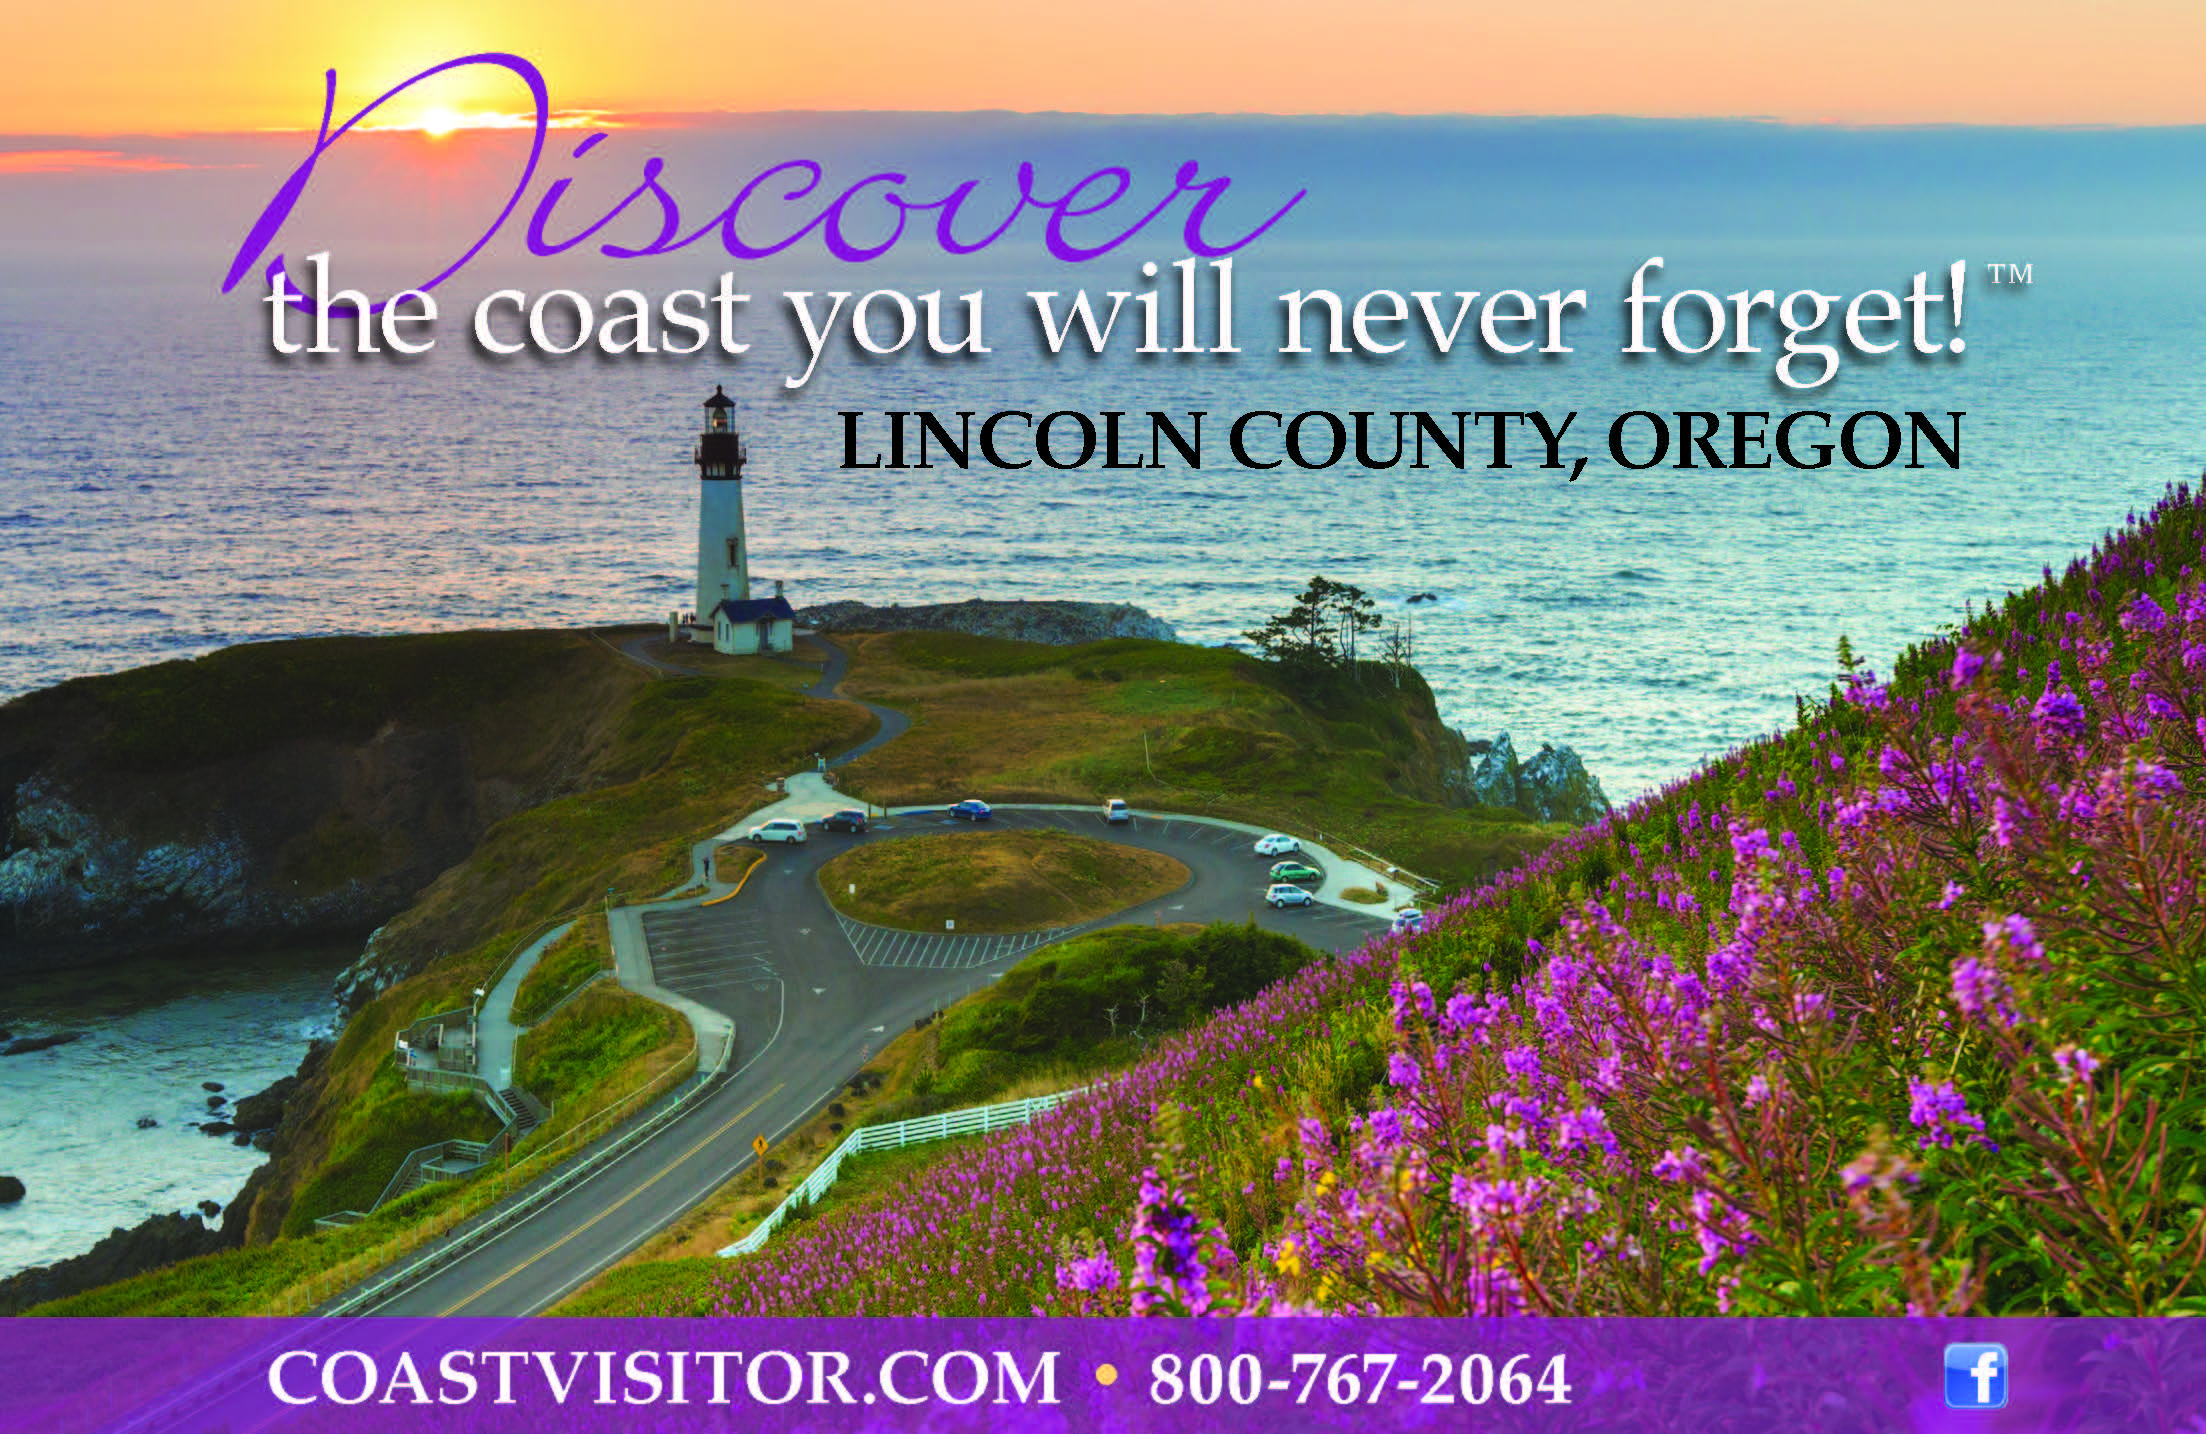 Coast Visitor poster